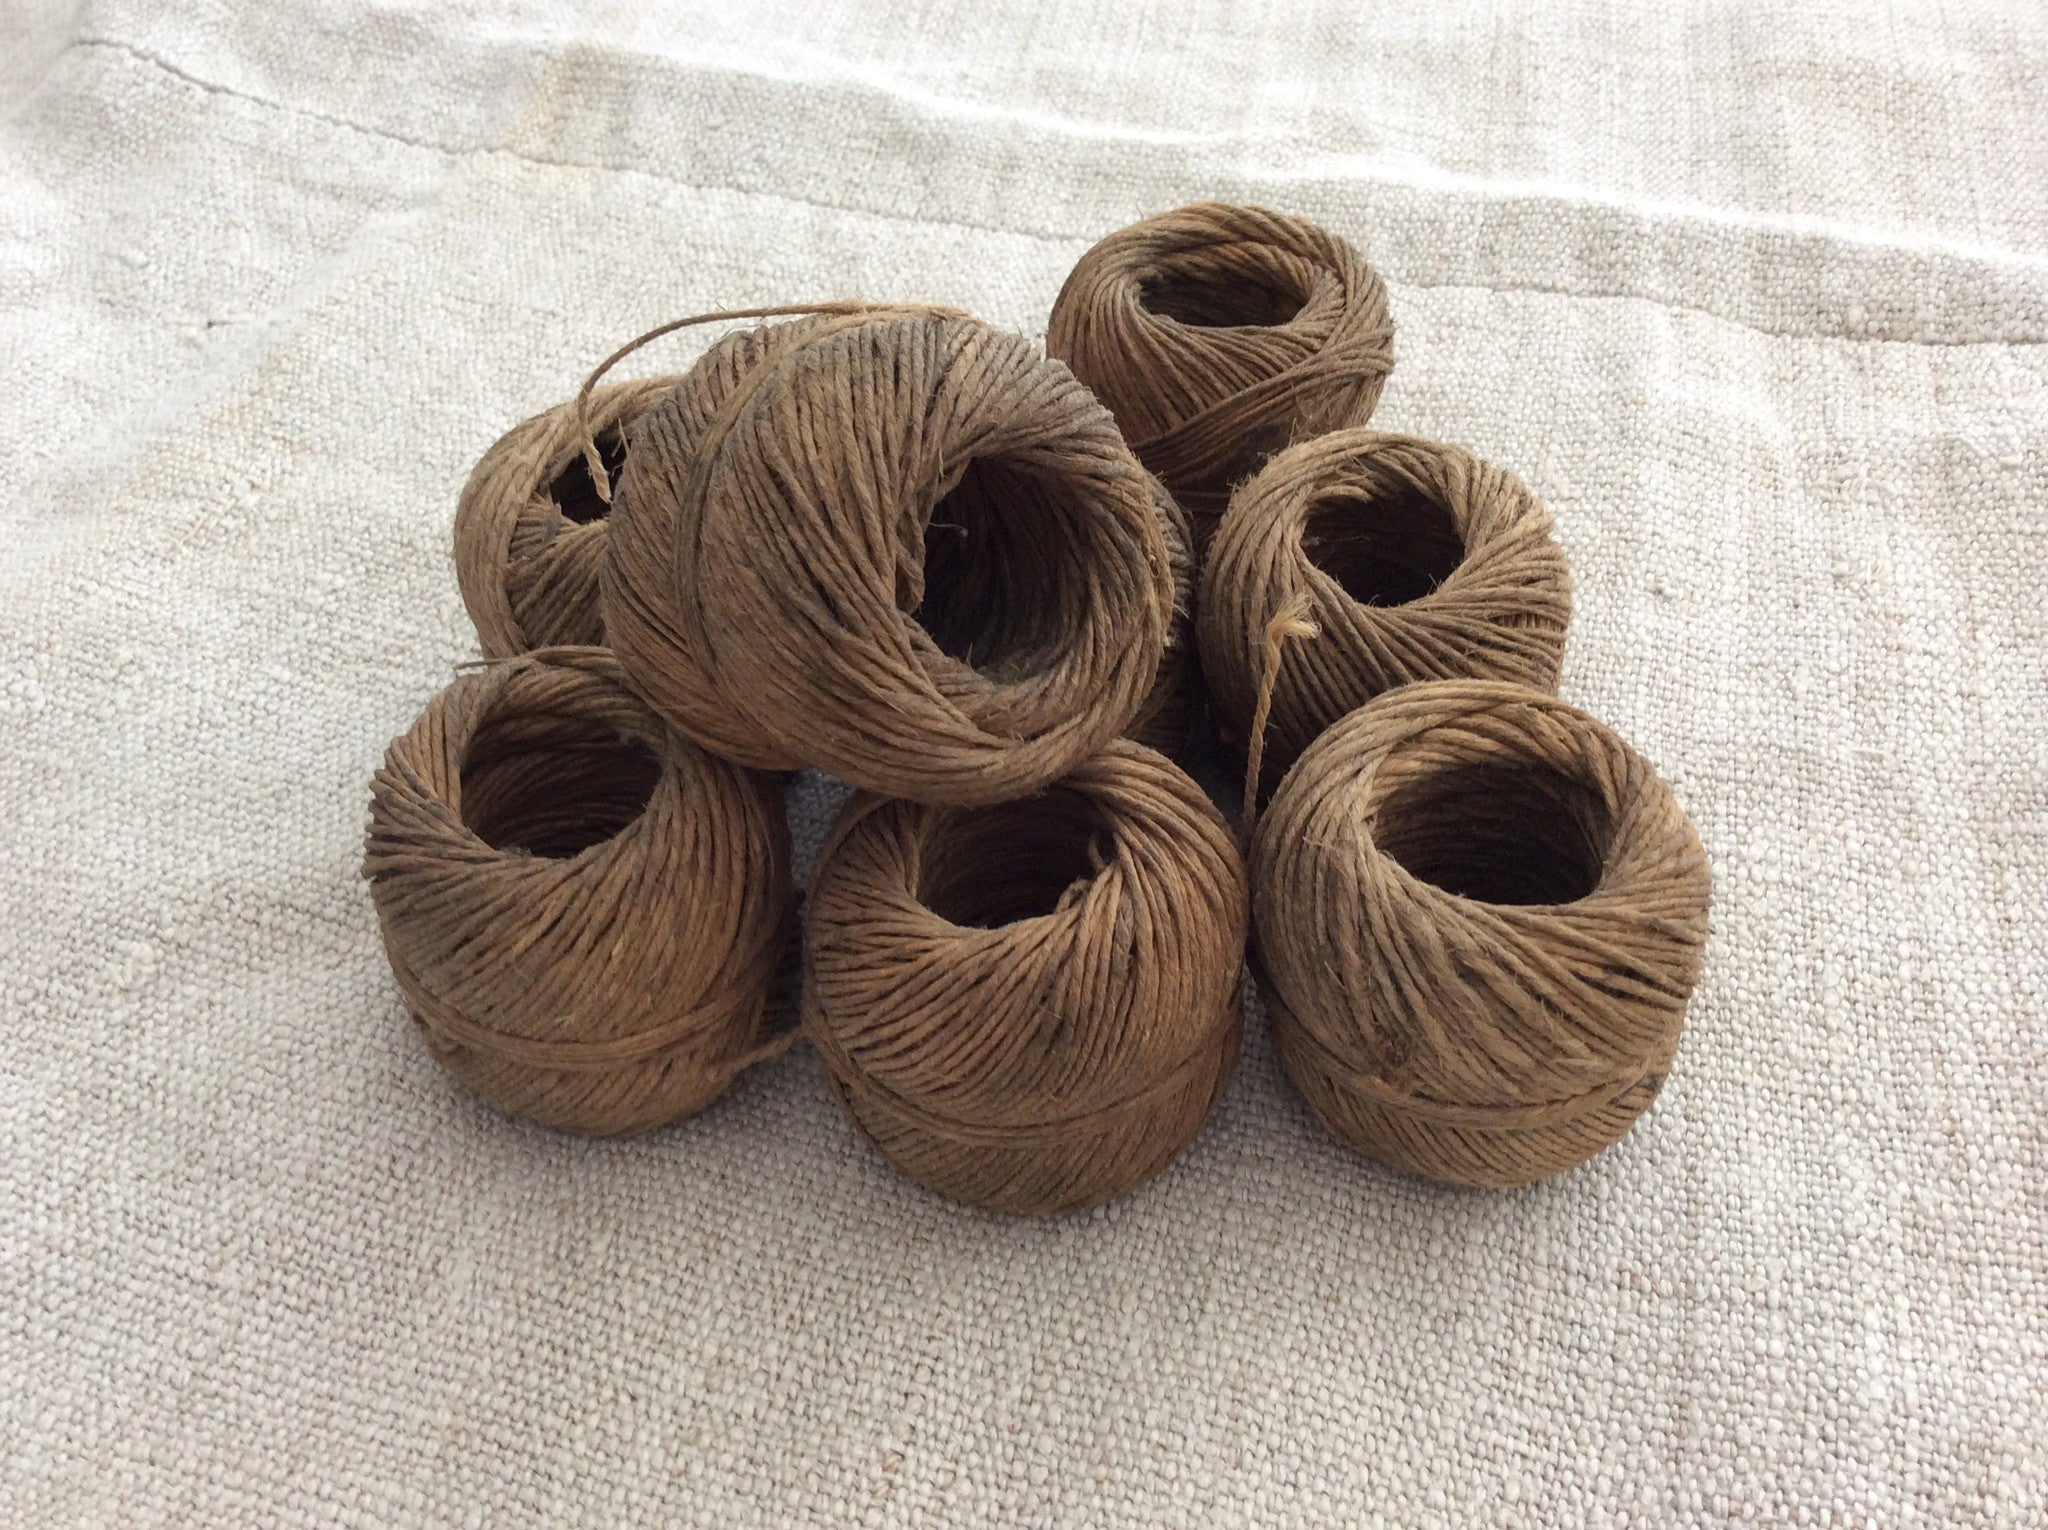 Antique Hemp Twine